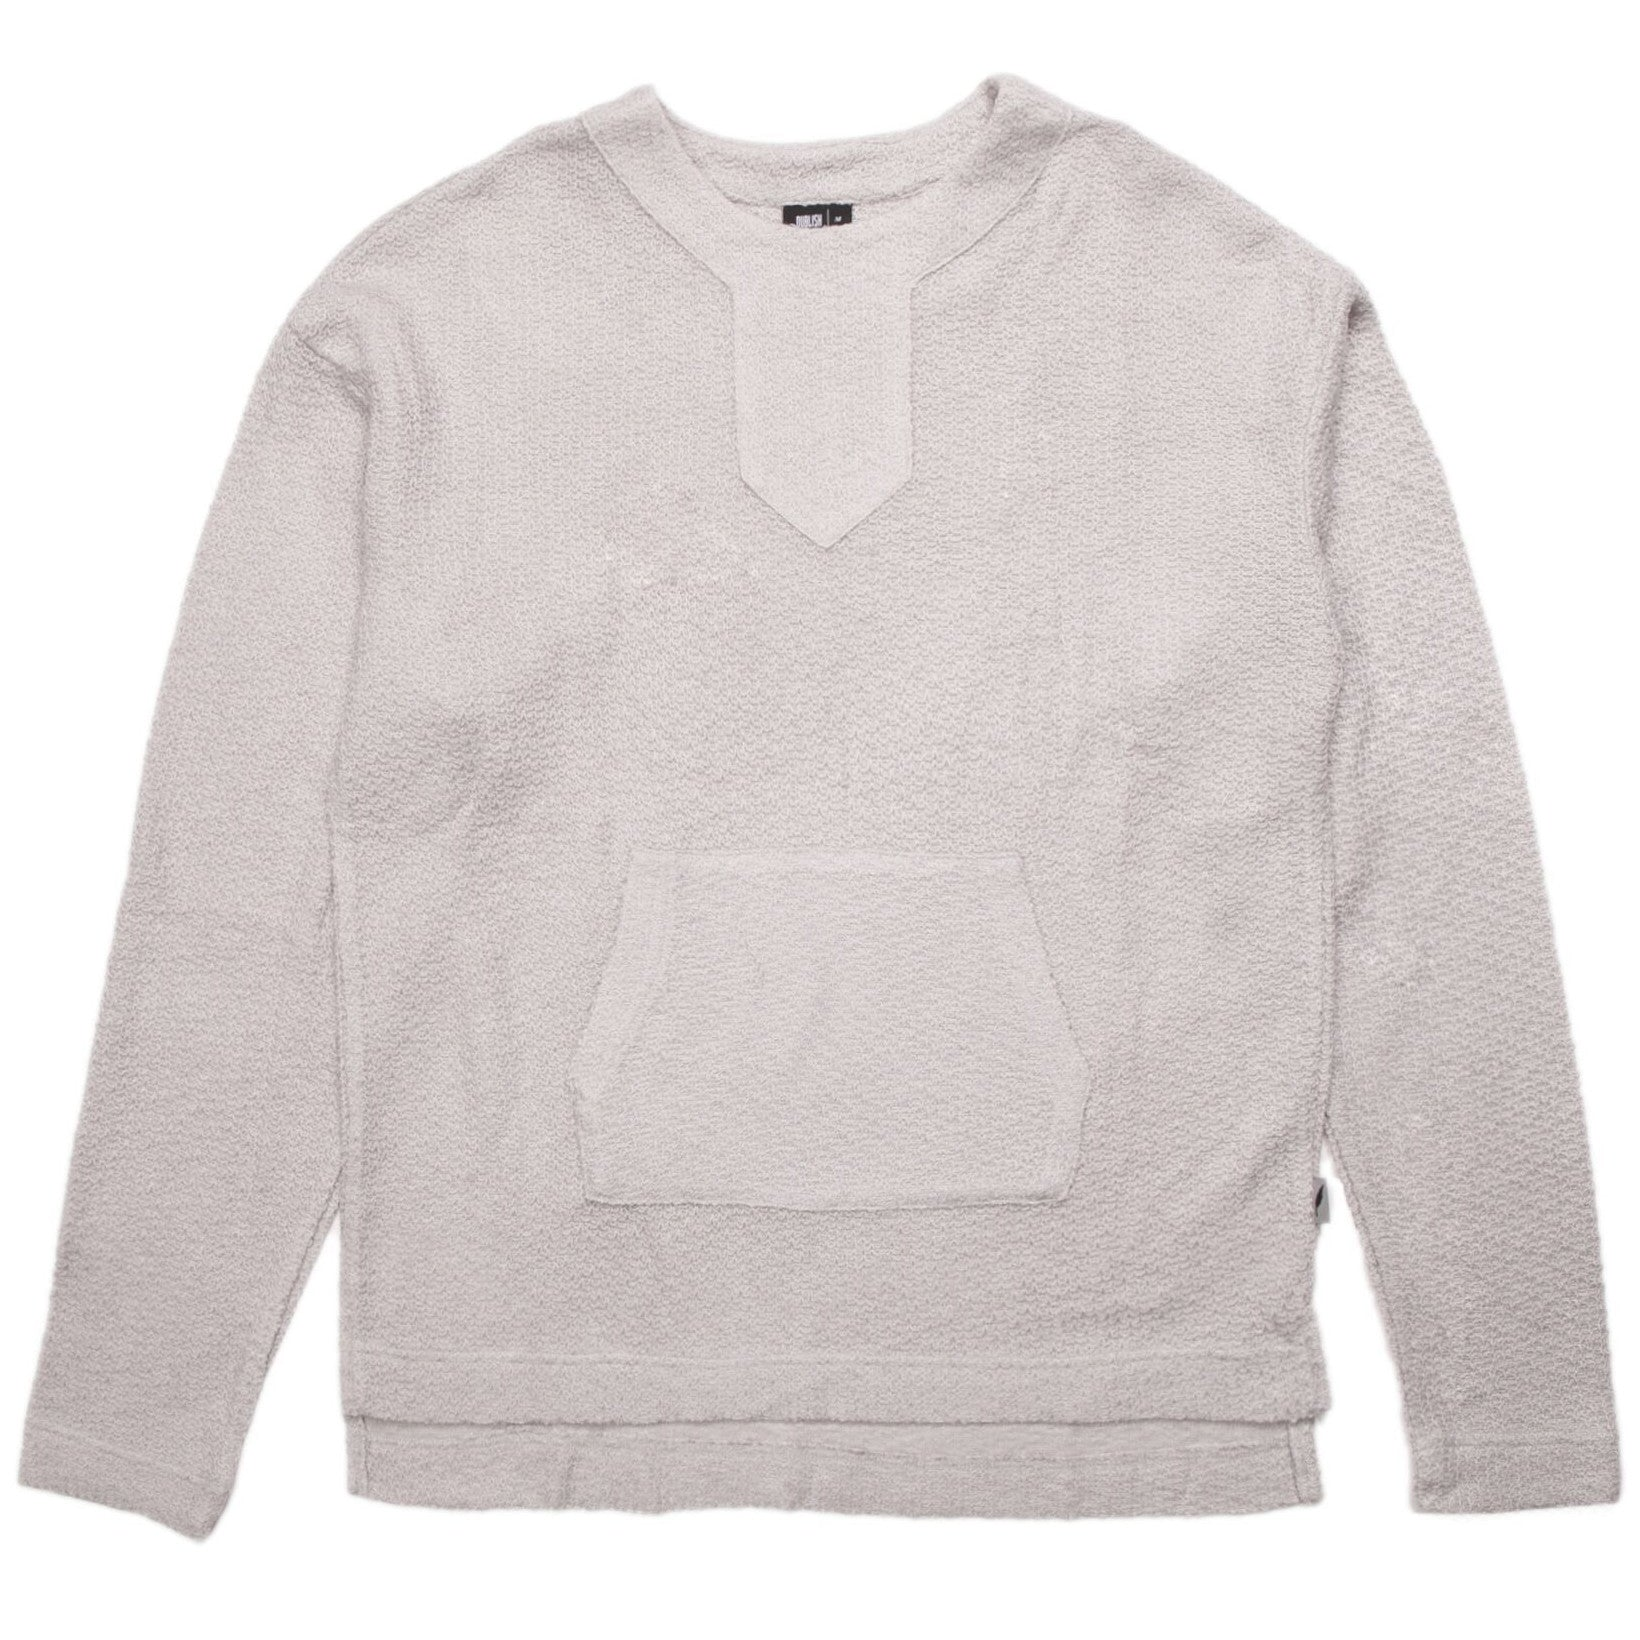 Nico Knit Pullover (Grey) - Publish